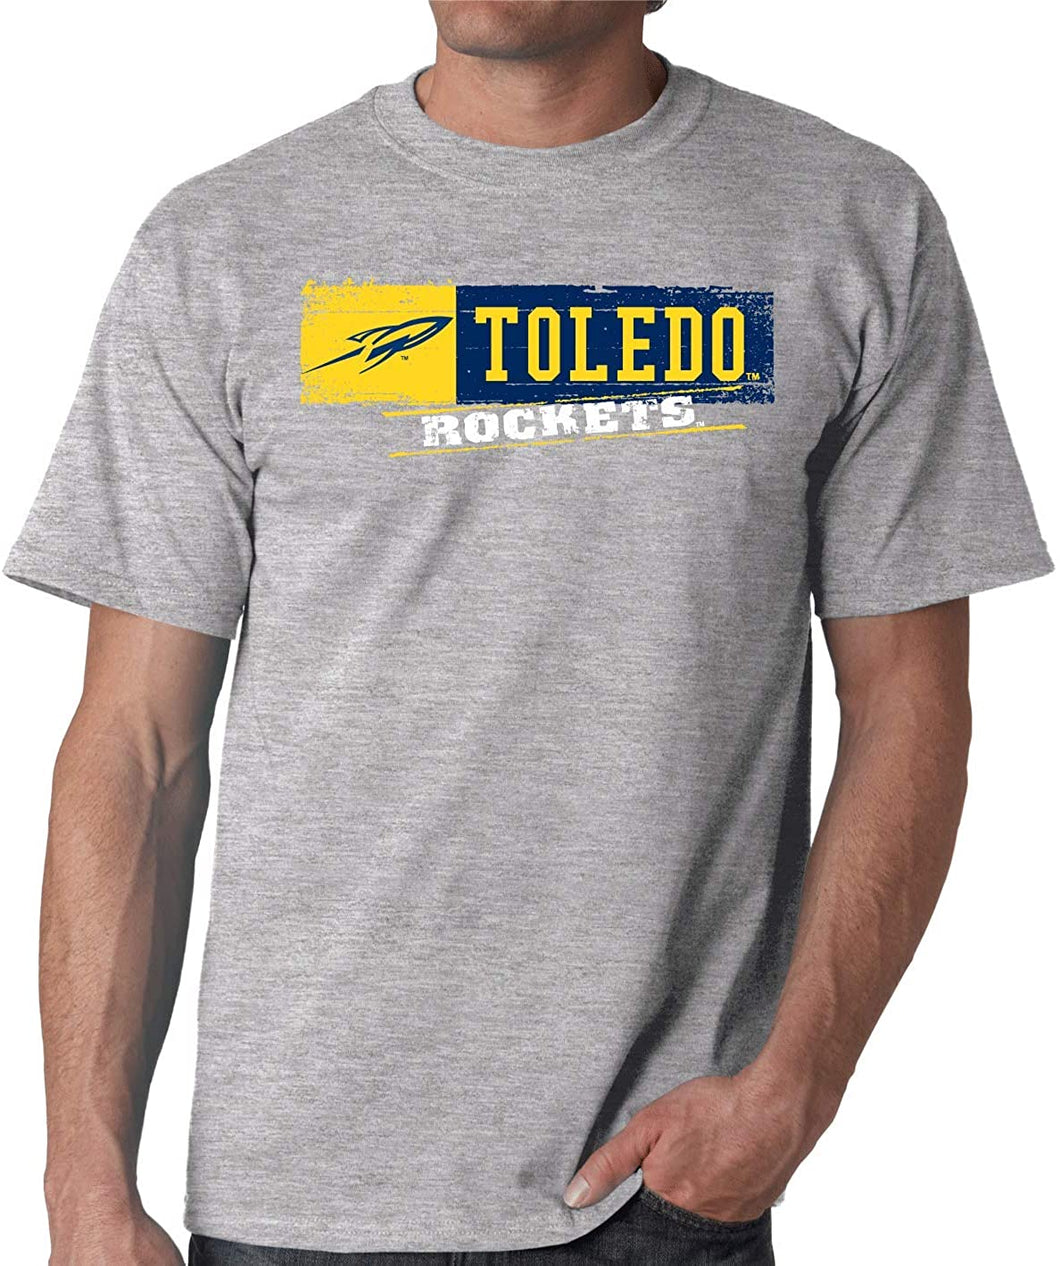 University of Toledo Rockets NCAA Sticker Unisex T-Shirt